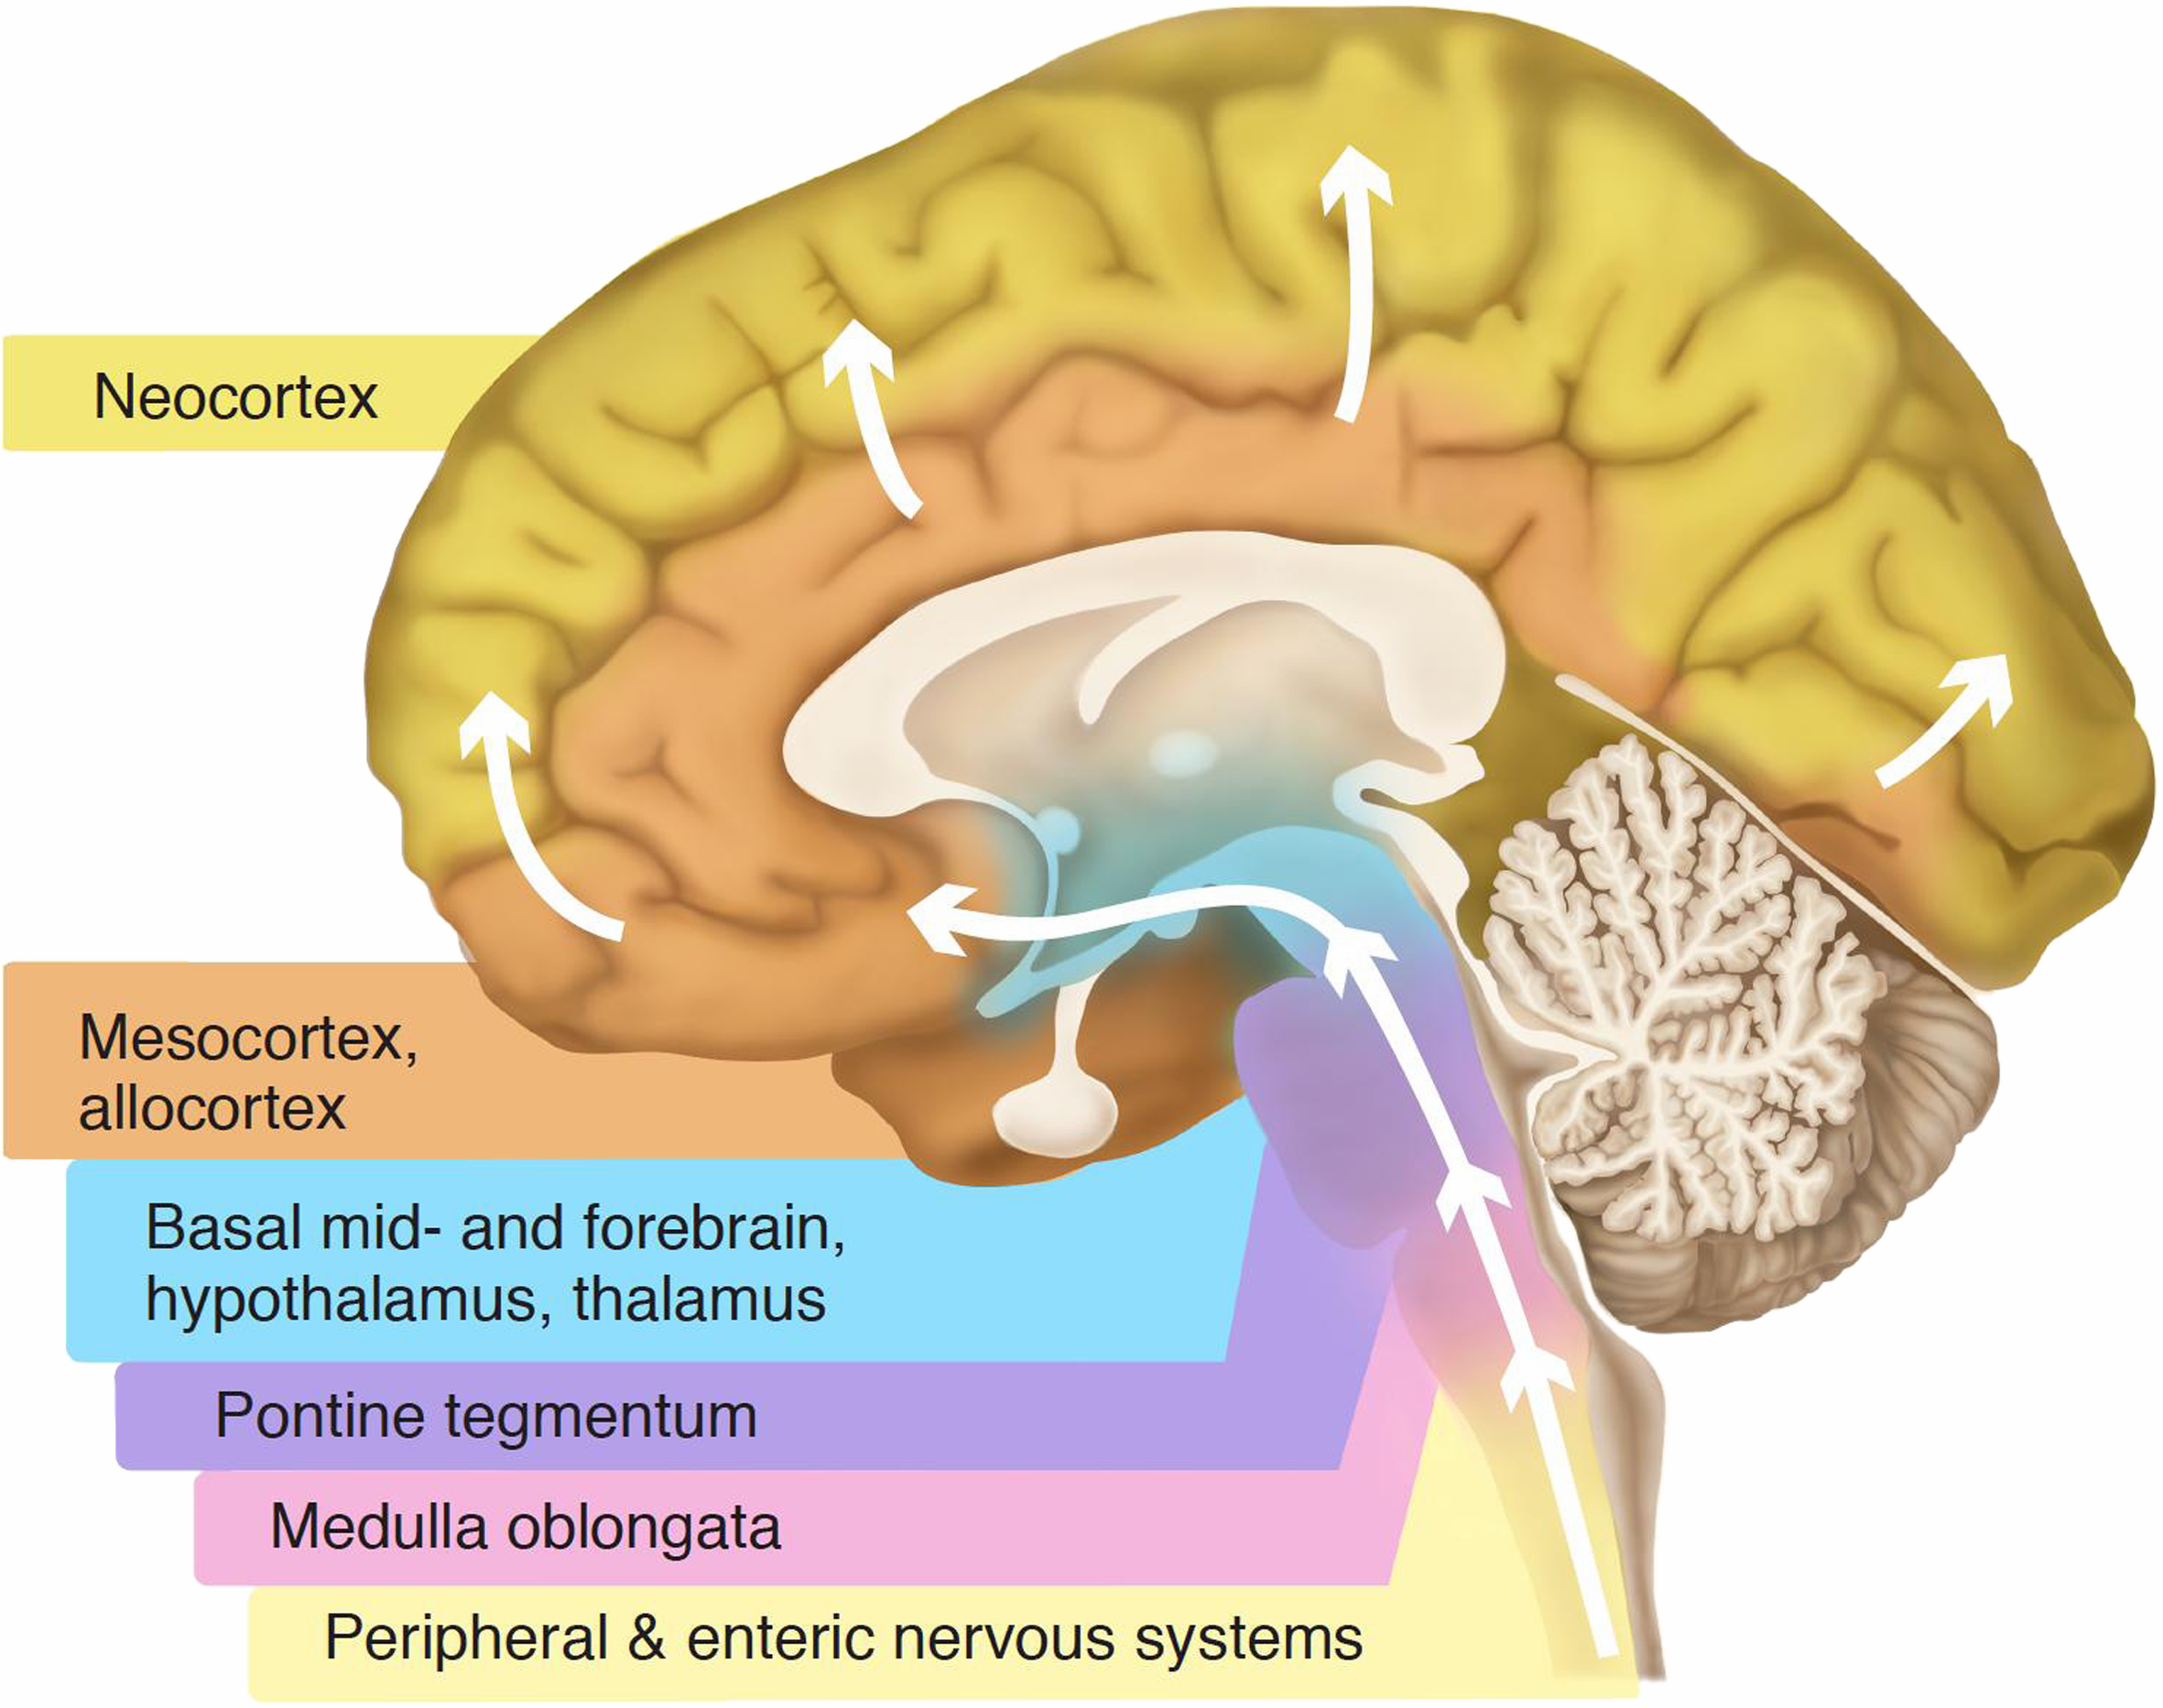 The arrow indicates to how it is speculated the brain developed over time, the neocortex being what essentially propelled human innovation